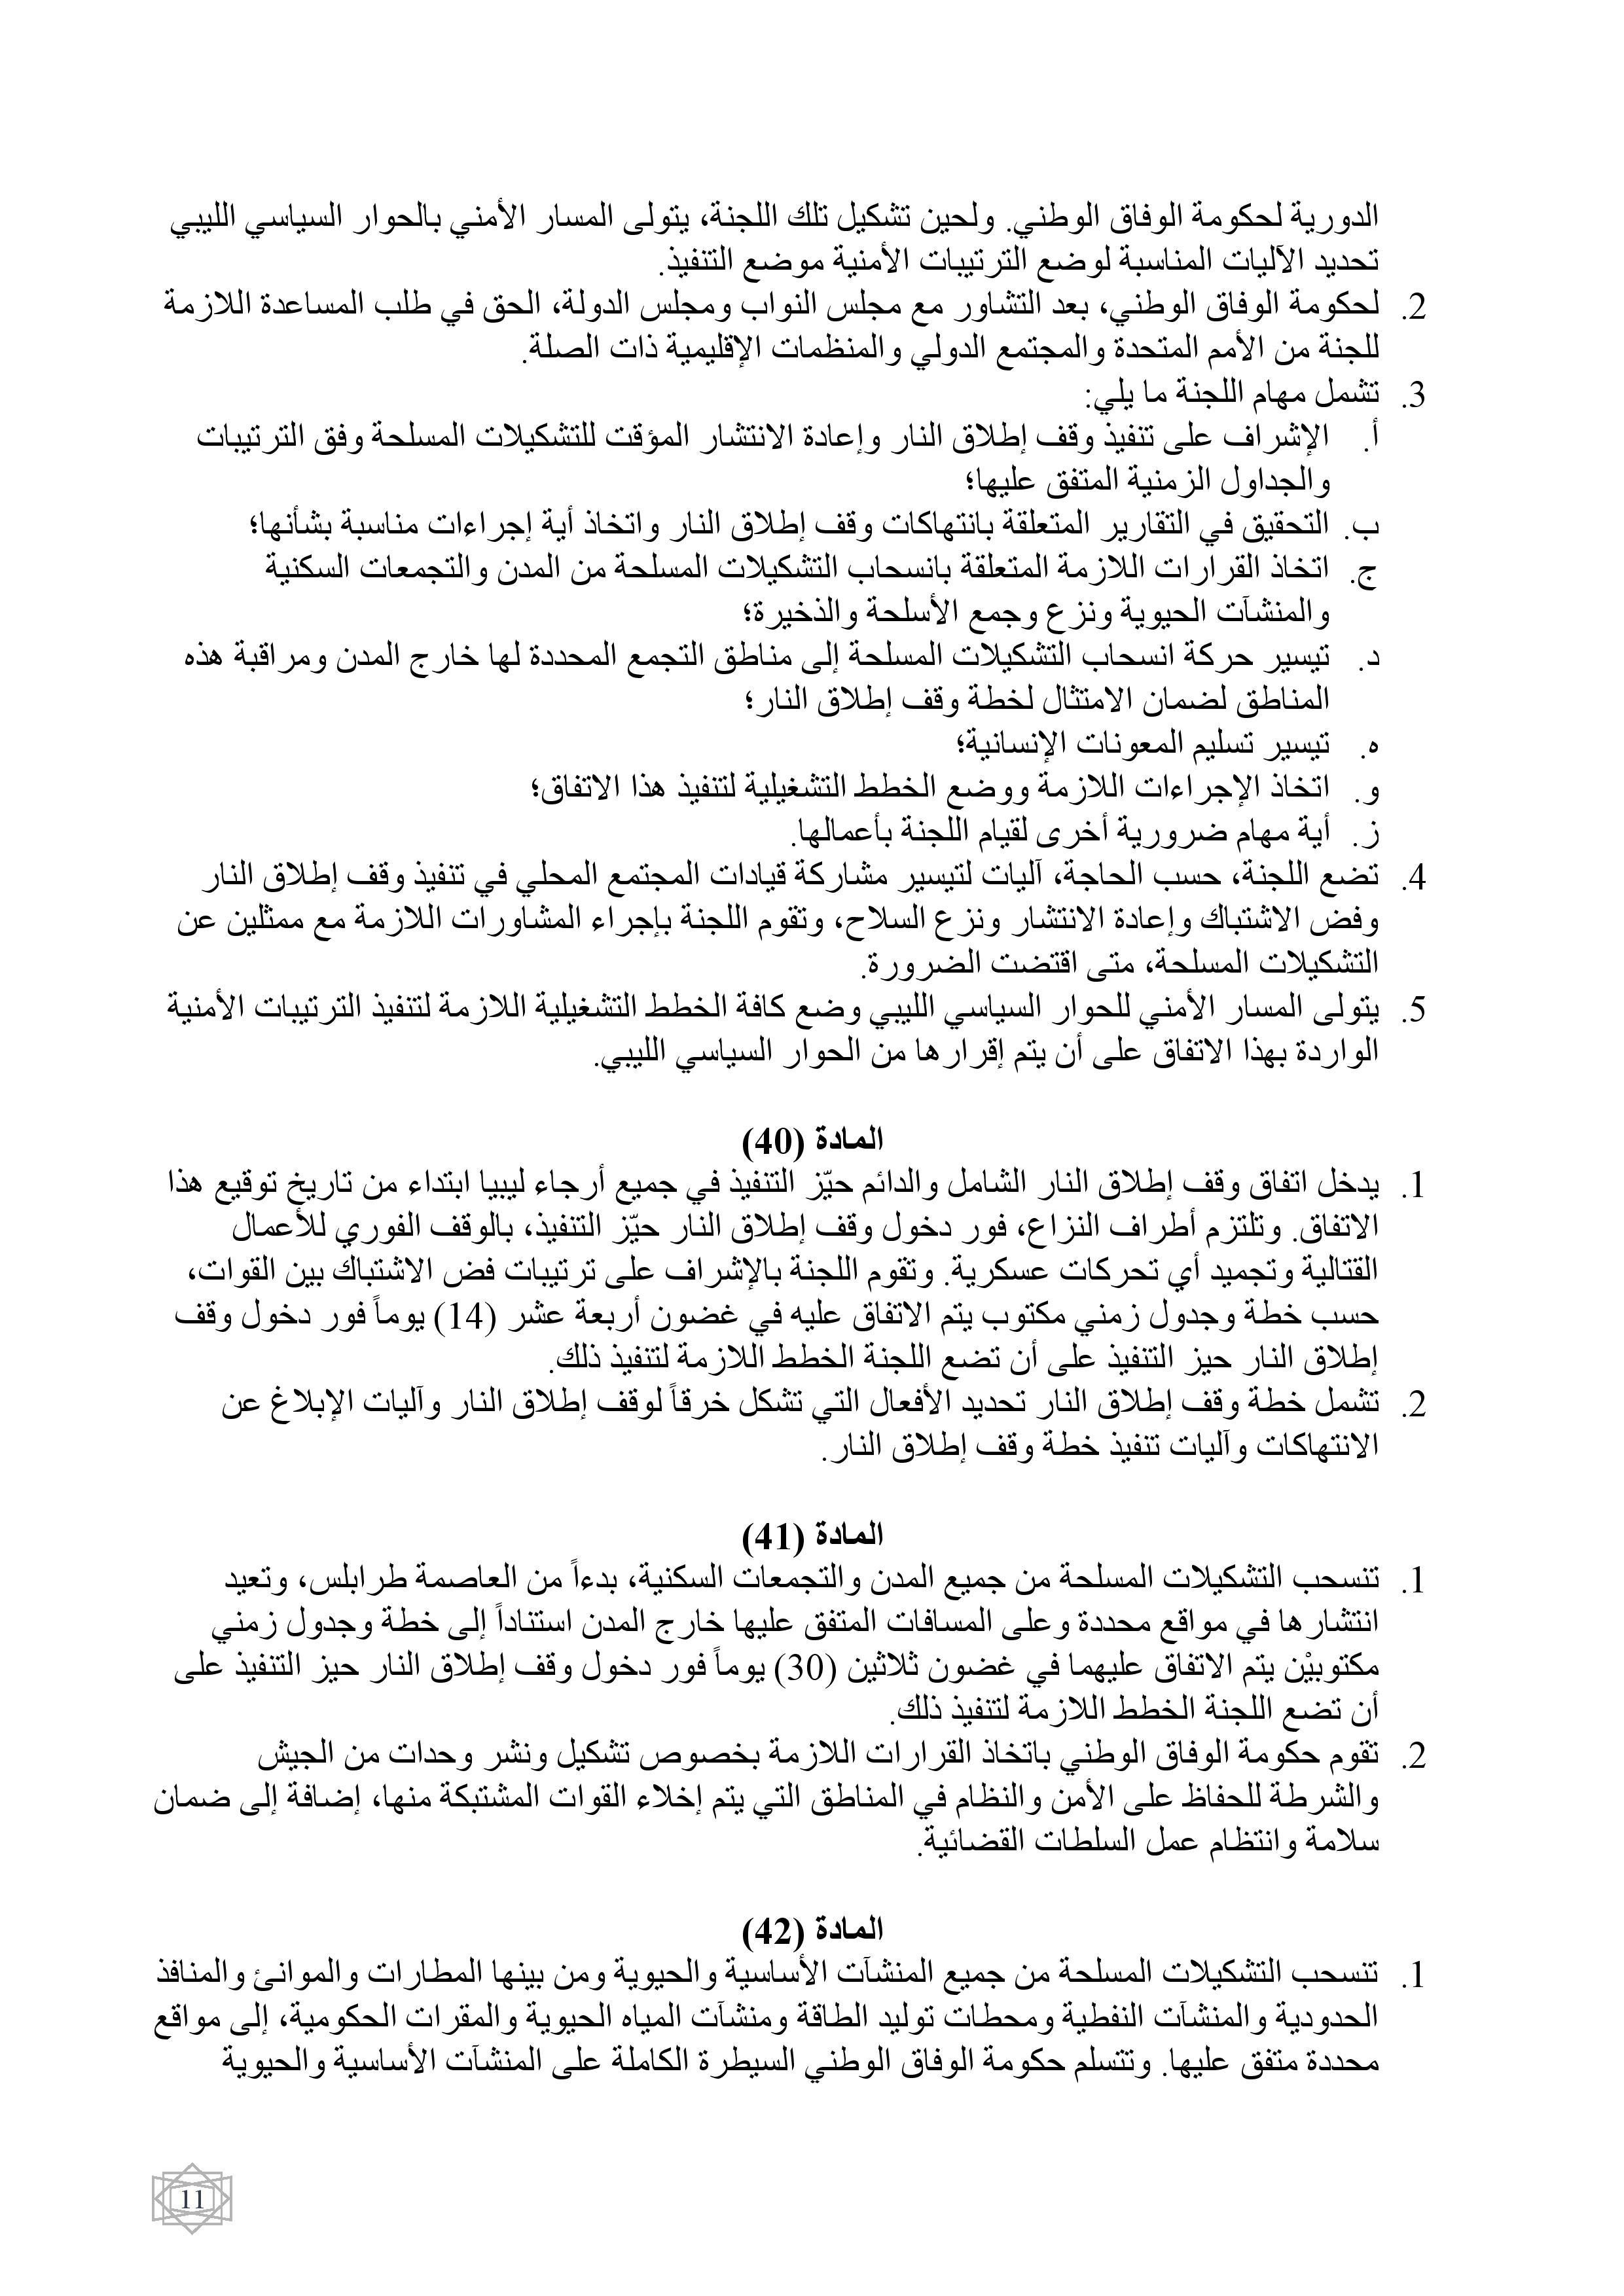 Libyan agreement-page-012